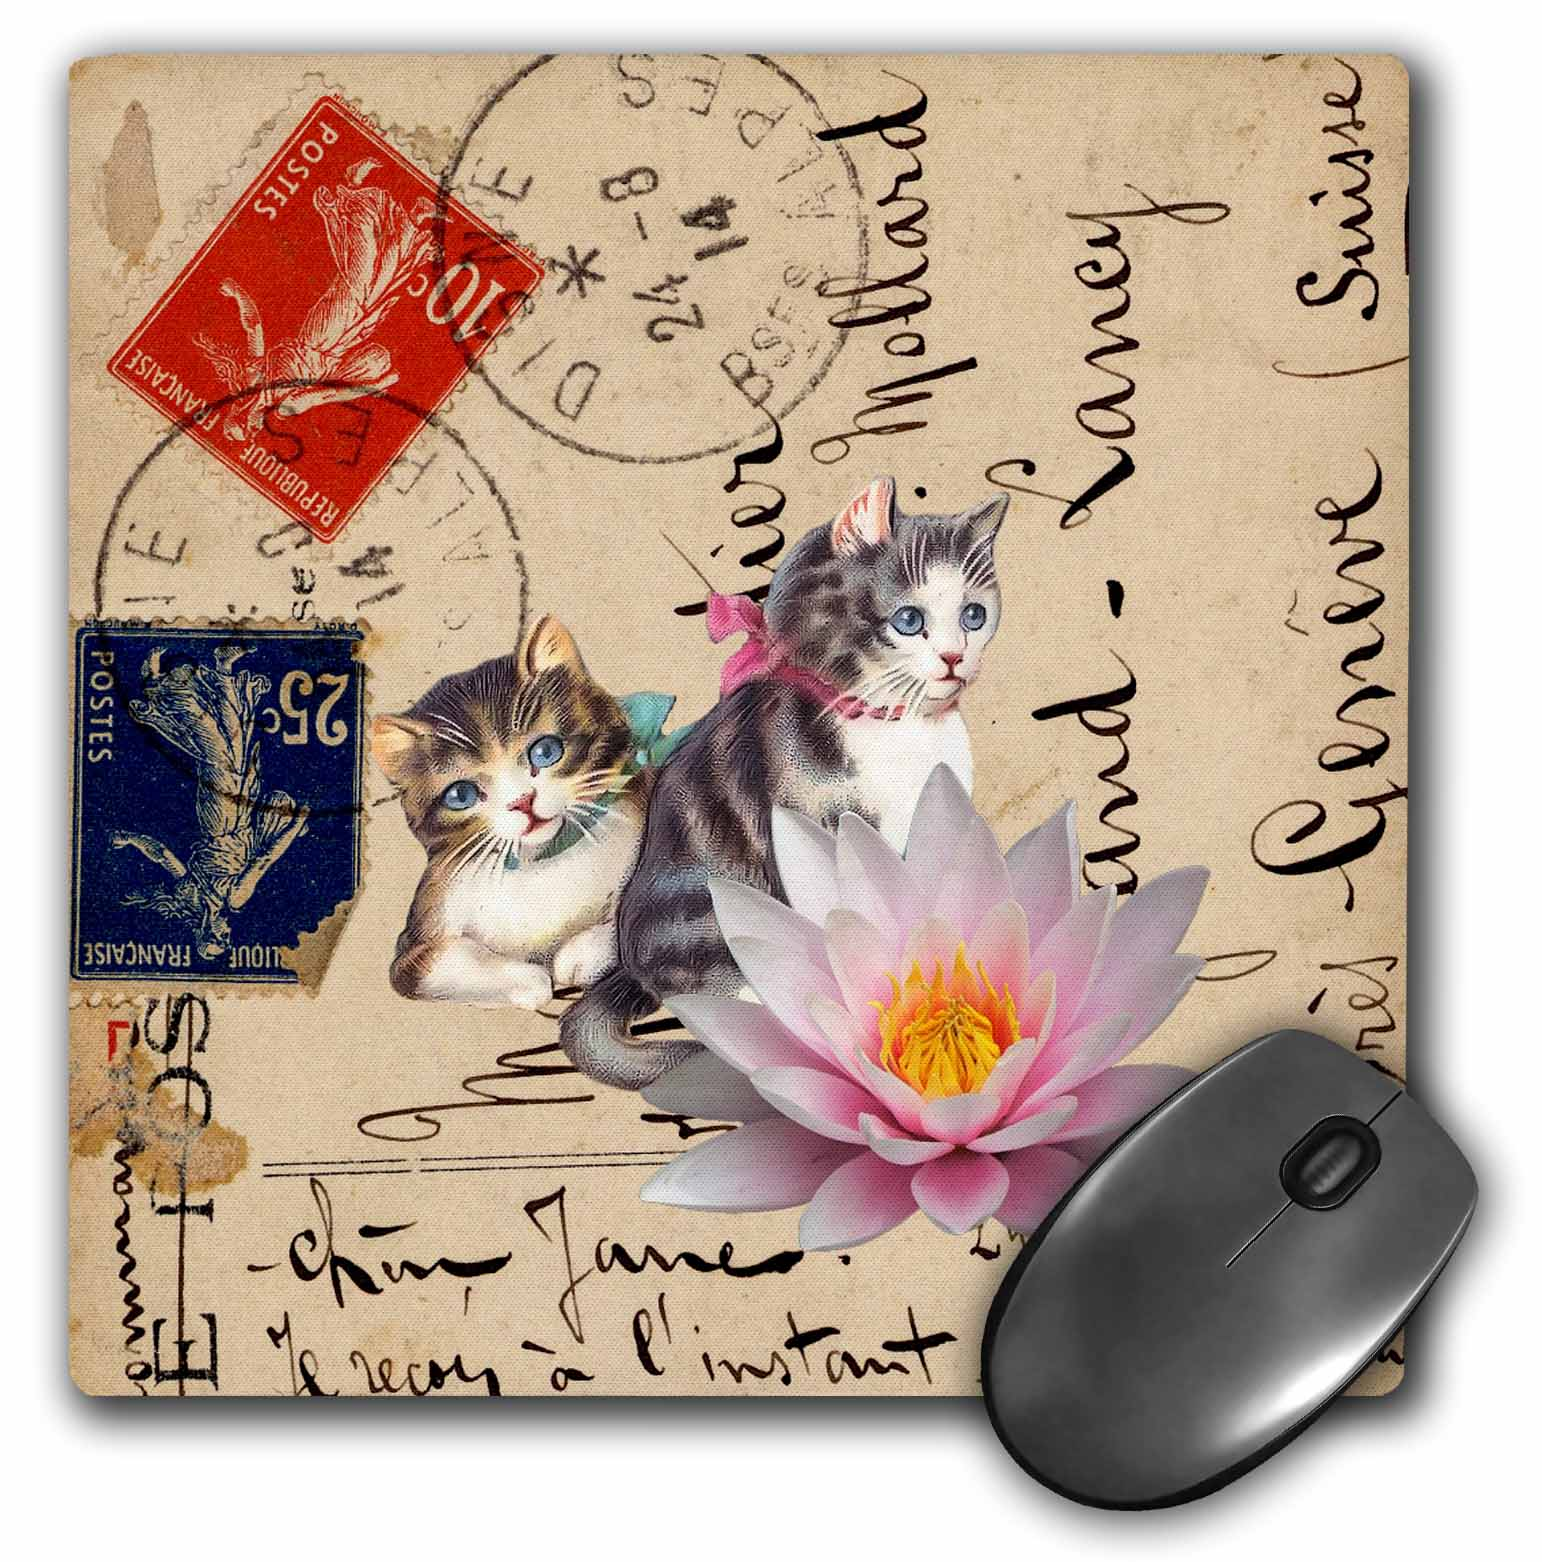 3dRose Vintage Cats on a Postcard Back Digital Art by Angelandspot, Mouse Pad, 8 by 8 inches